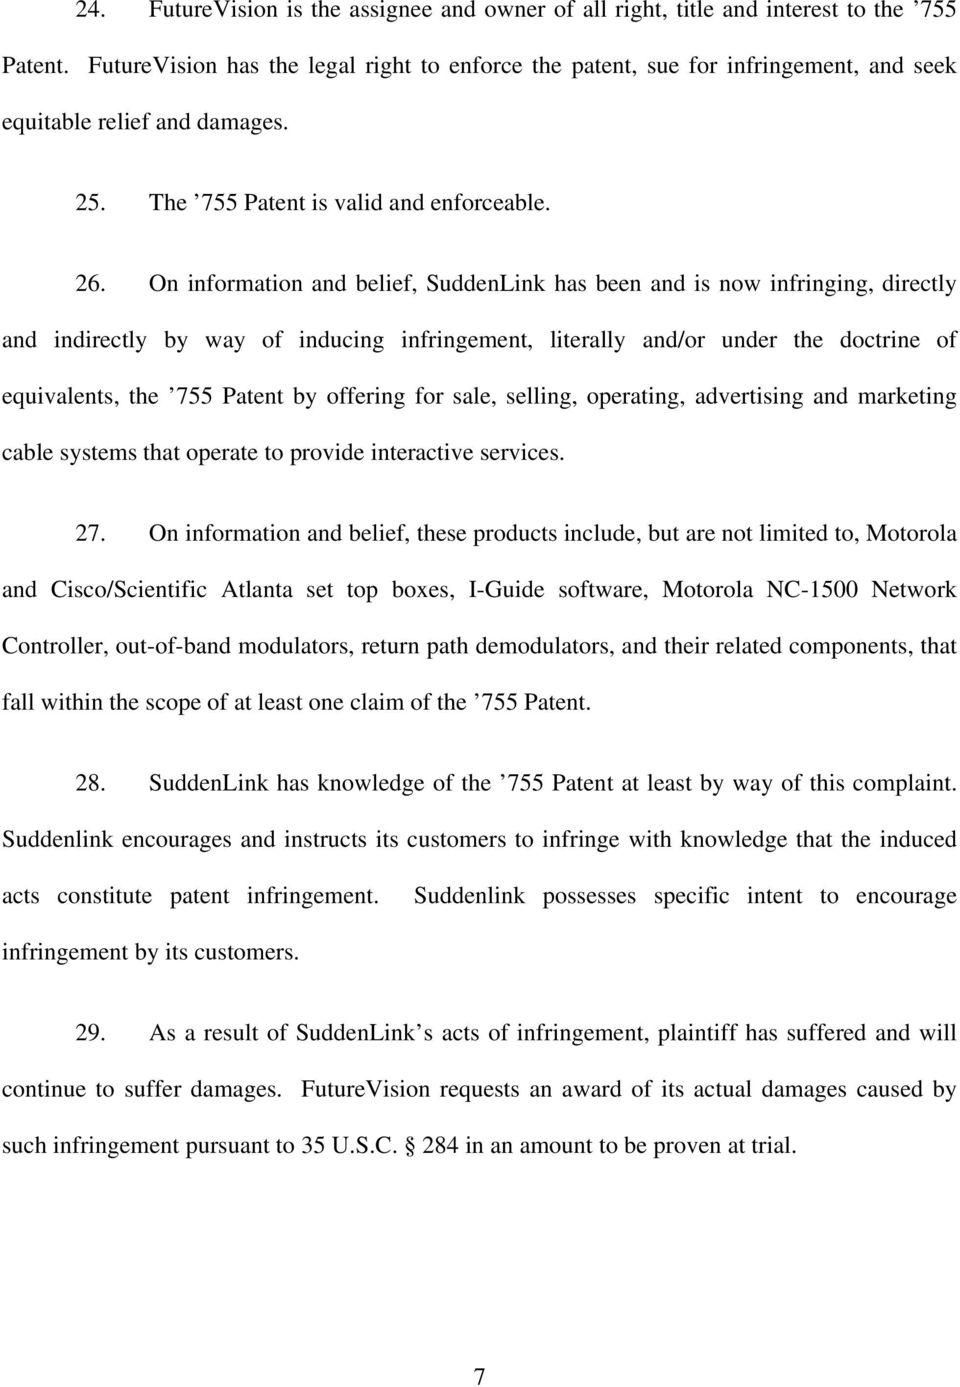 On information and belief, SuddenLink has been and is now infringing, directly and indirectly by way of inducing infringement, literally and/or under the doctrine of equivalents, the 755 Patent by